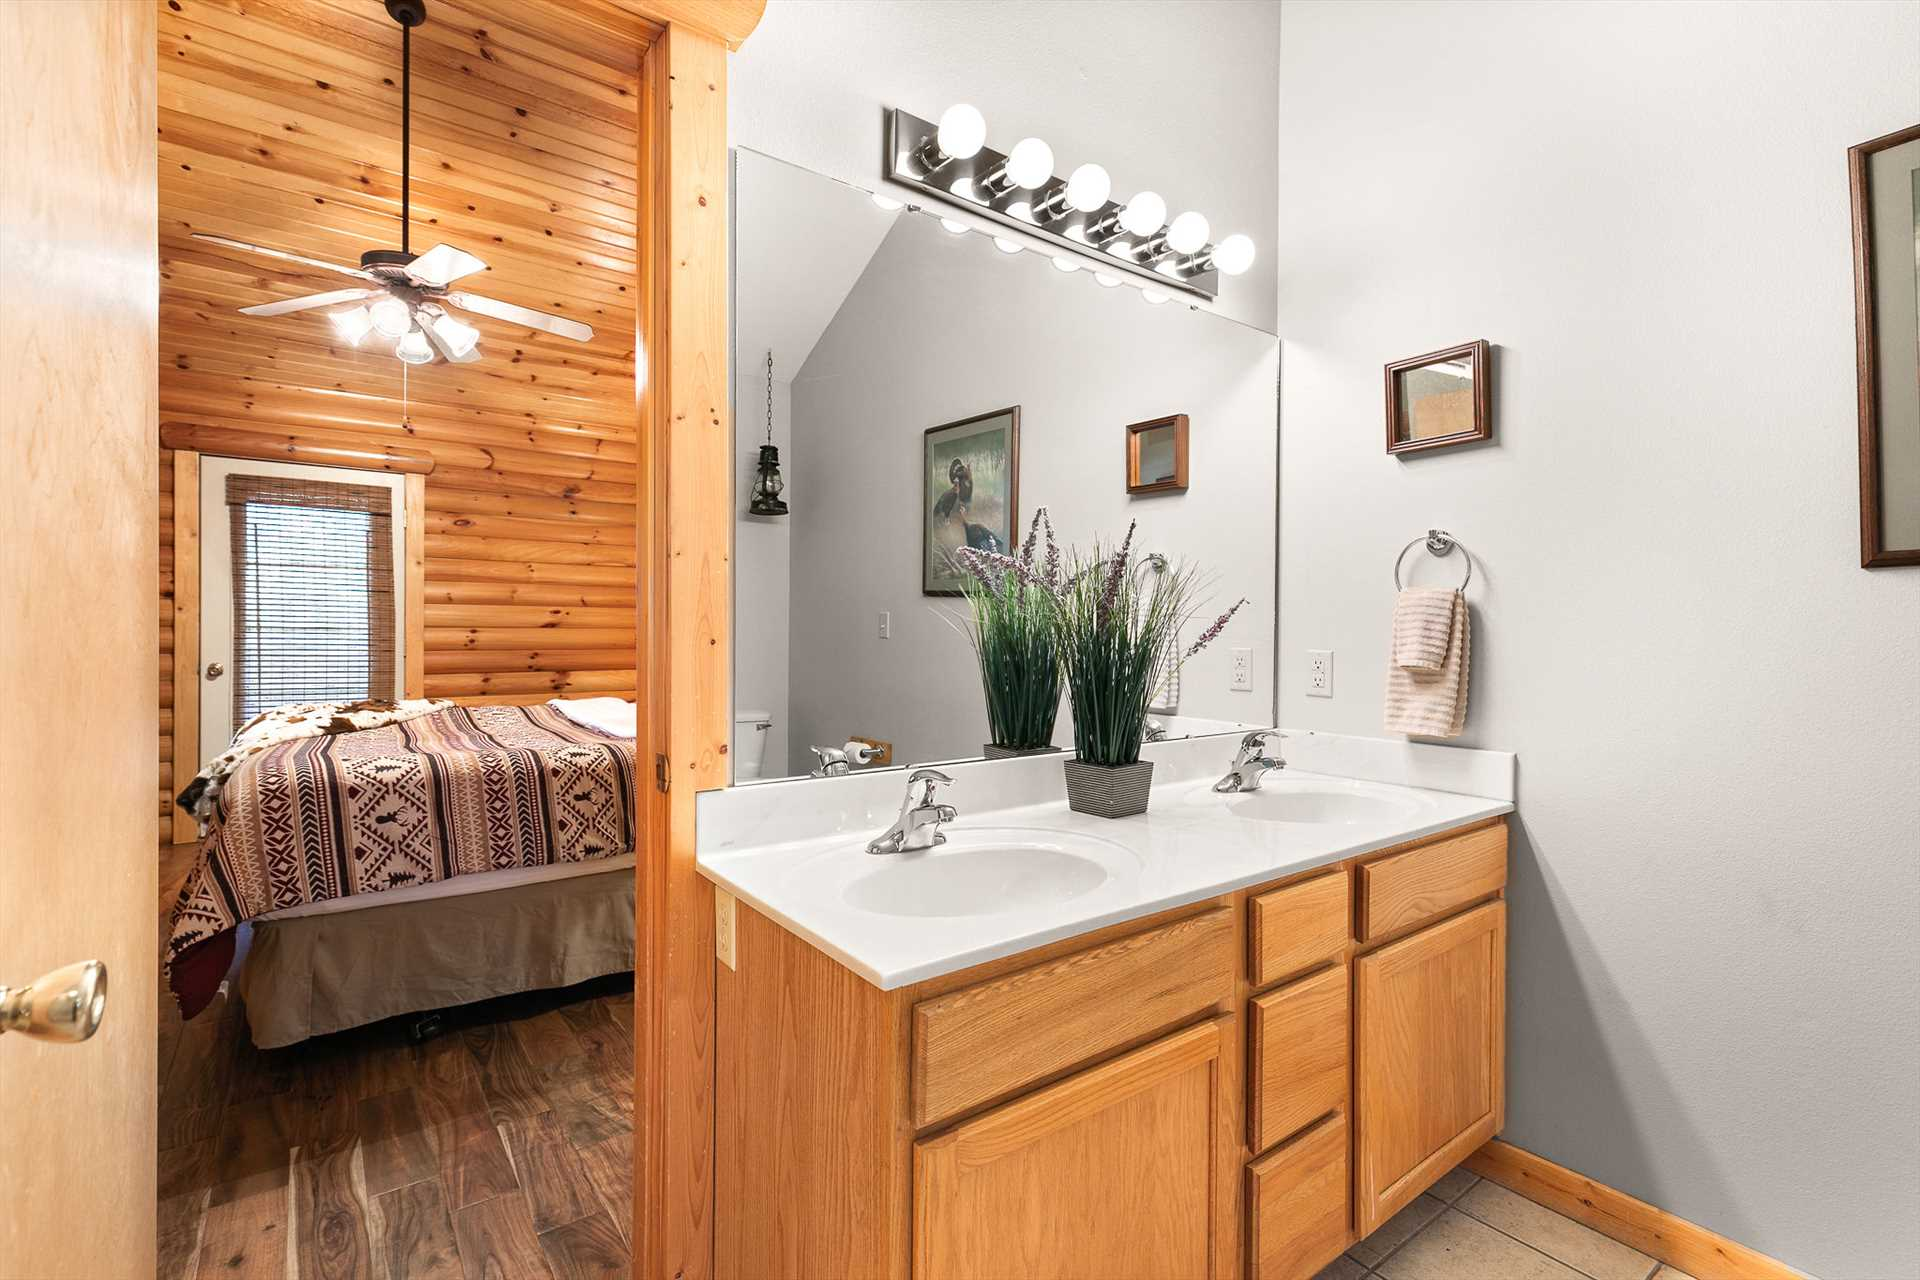 This bathroom has a double vanity and a jetted tub.